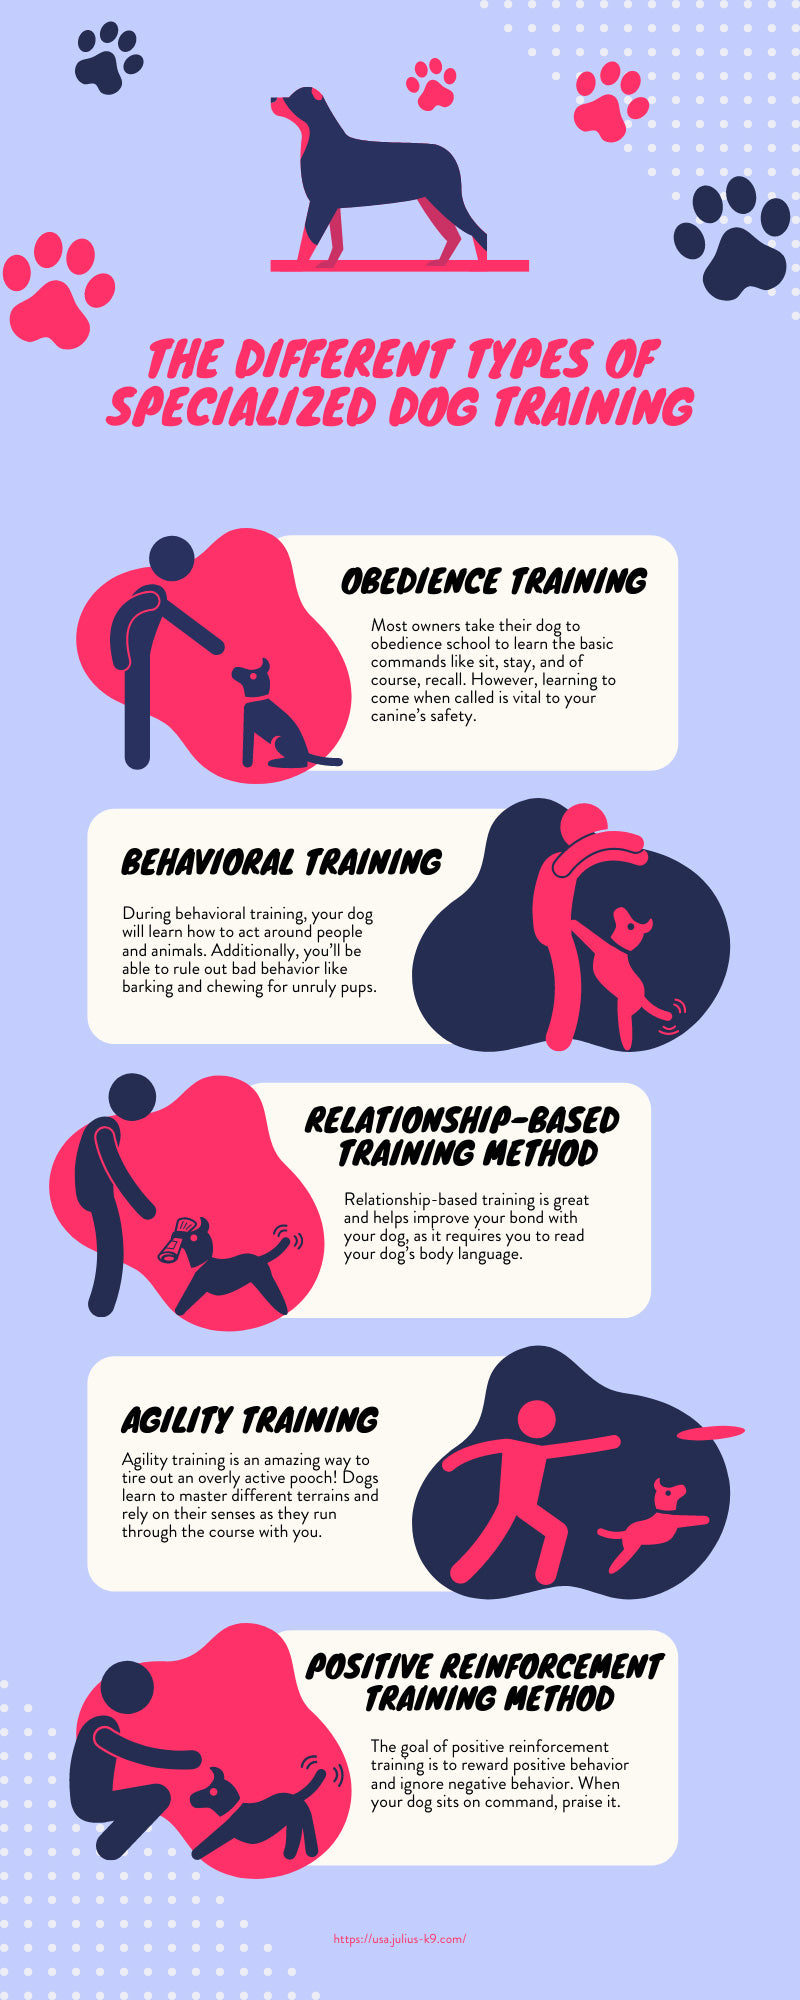 The Different Types of Specialized Dog Training